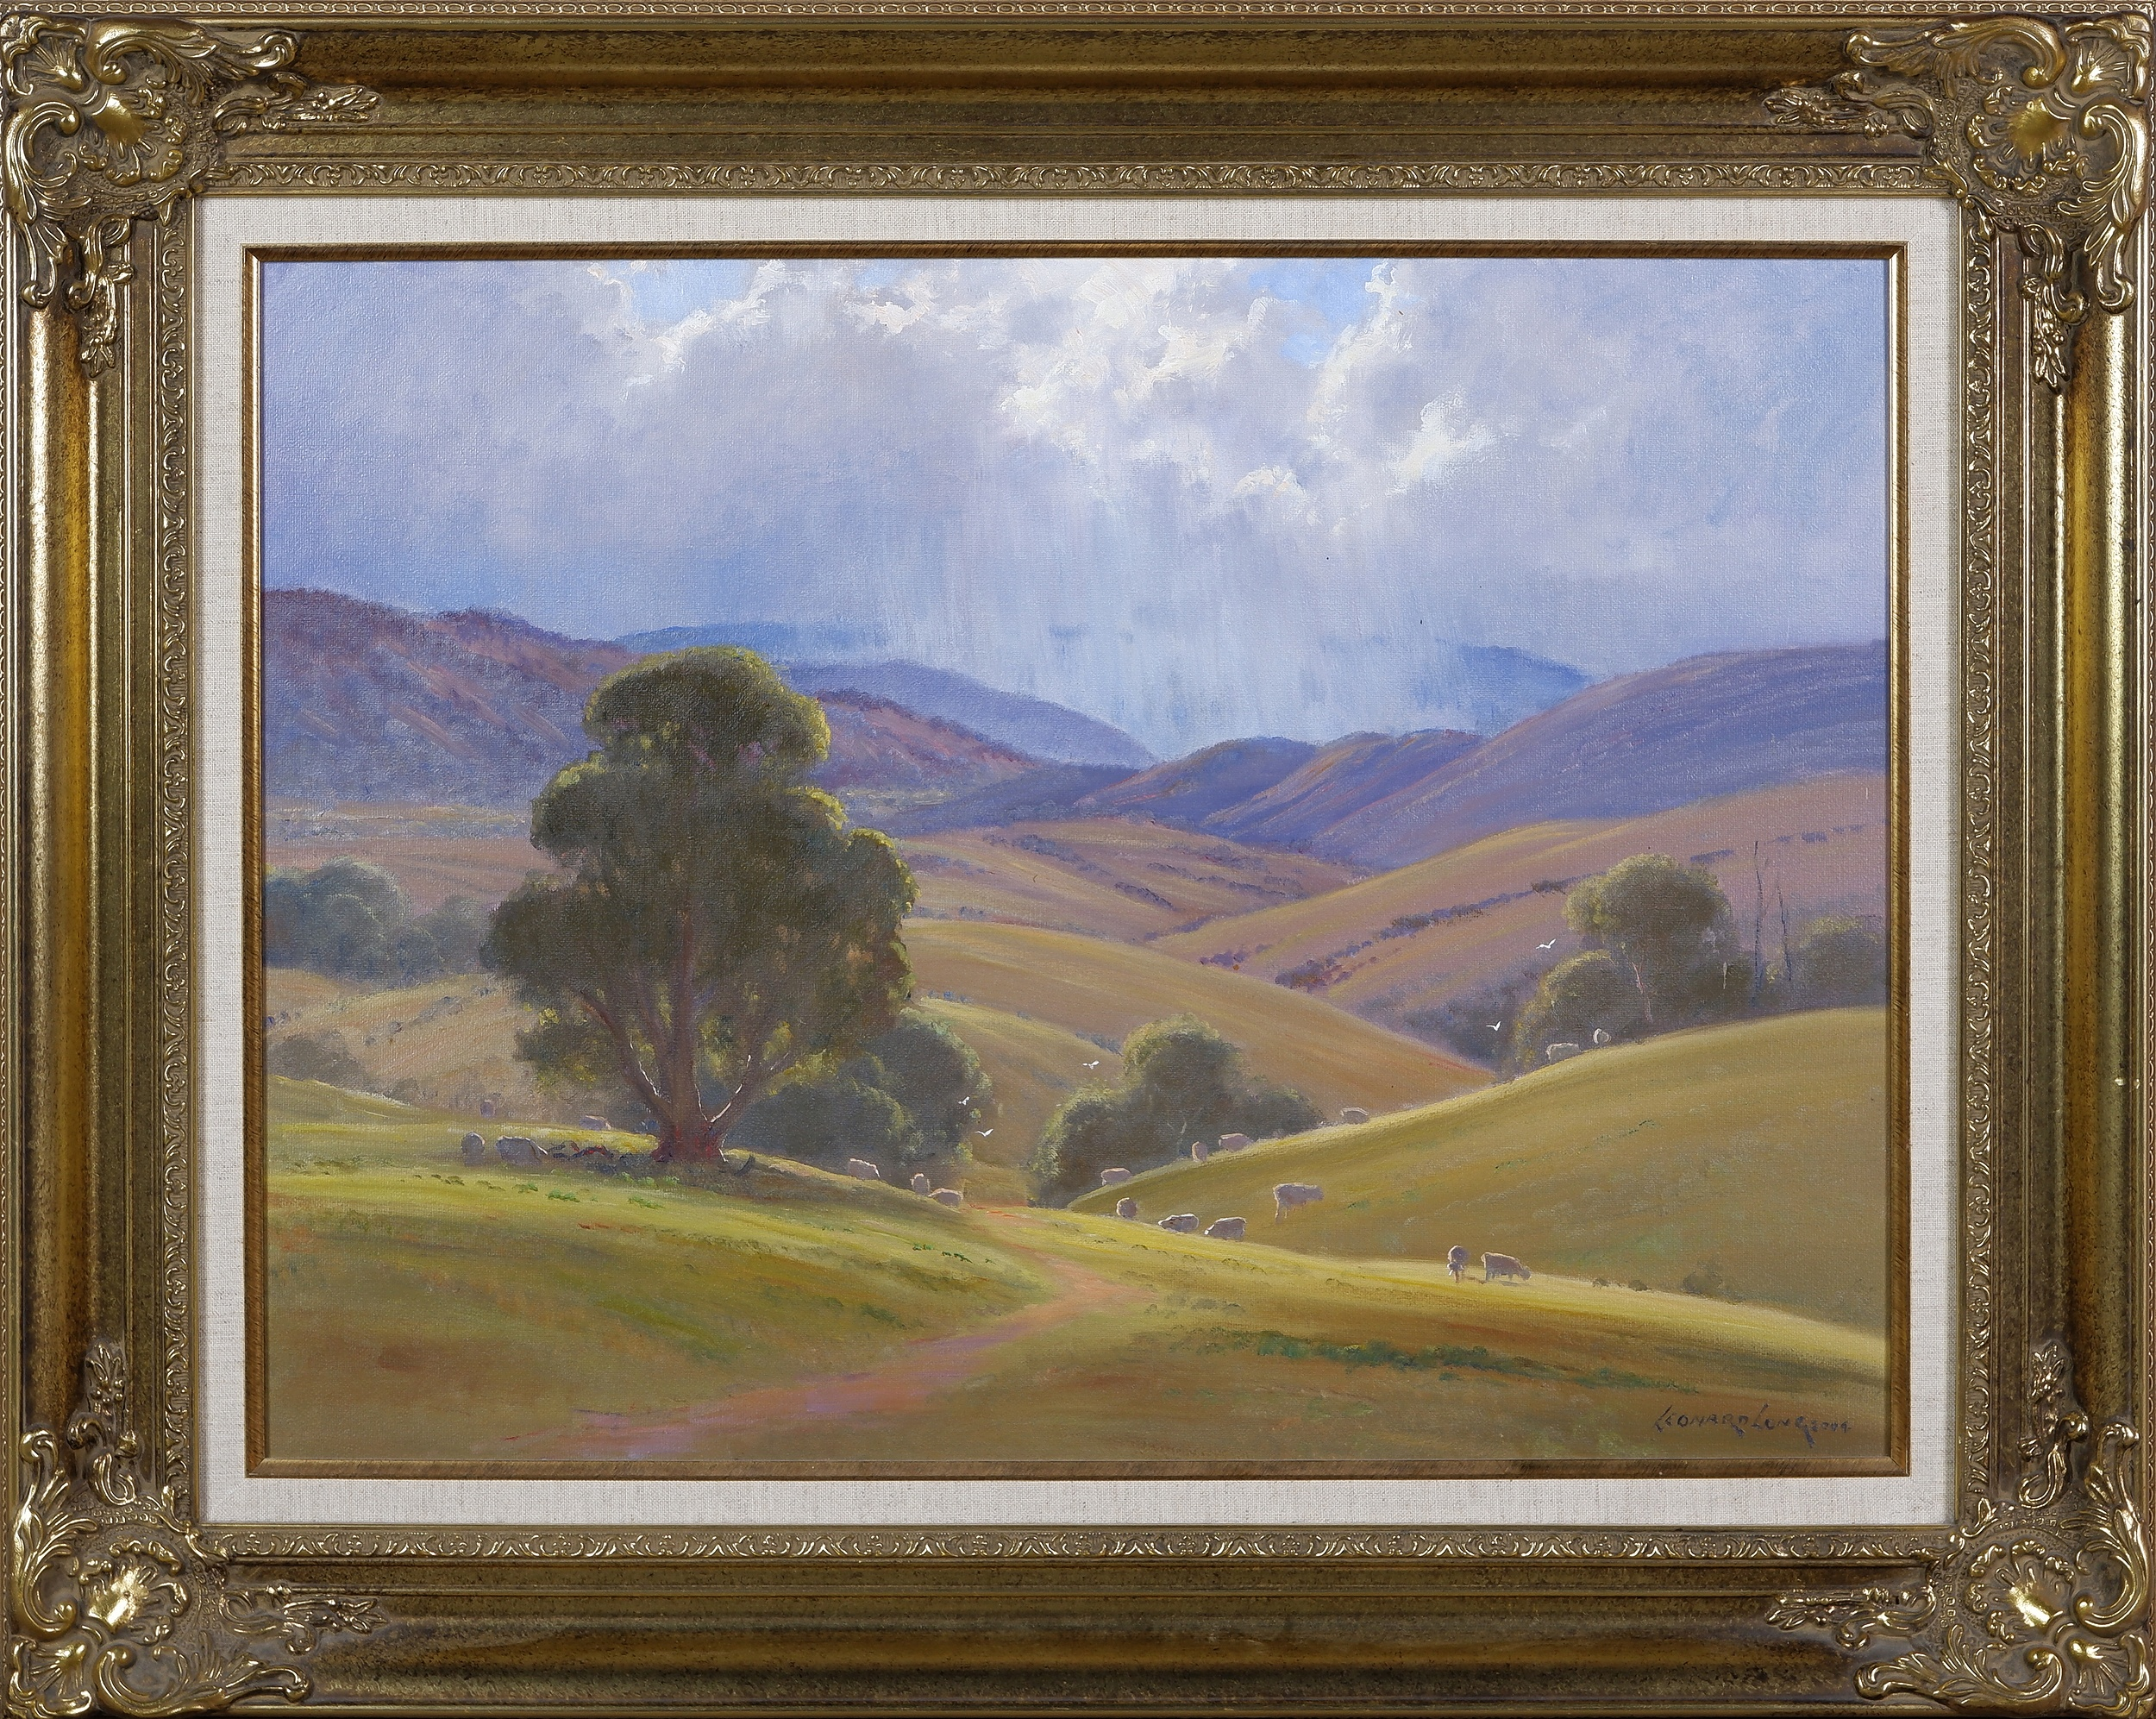 'Leonard Long (1911-2013), Squally Weather - McPherson Valley, Wee Jasper, New South Wales 2004, Oil on Canvas on Board'